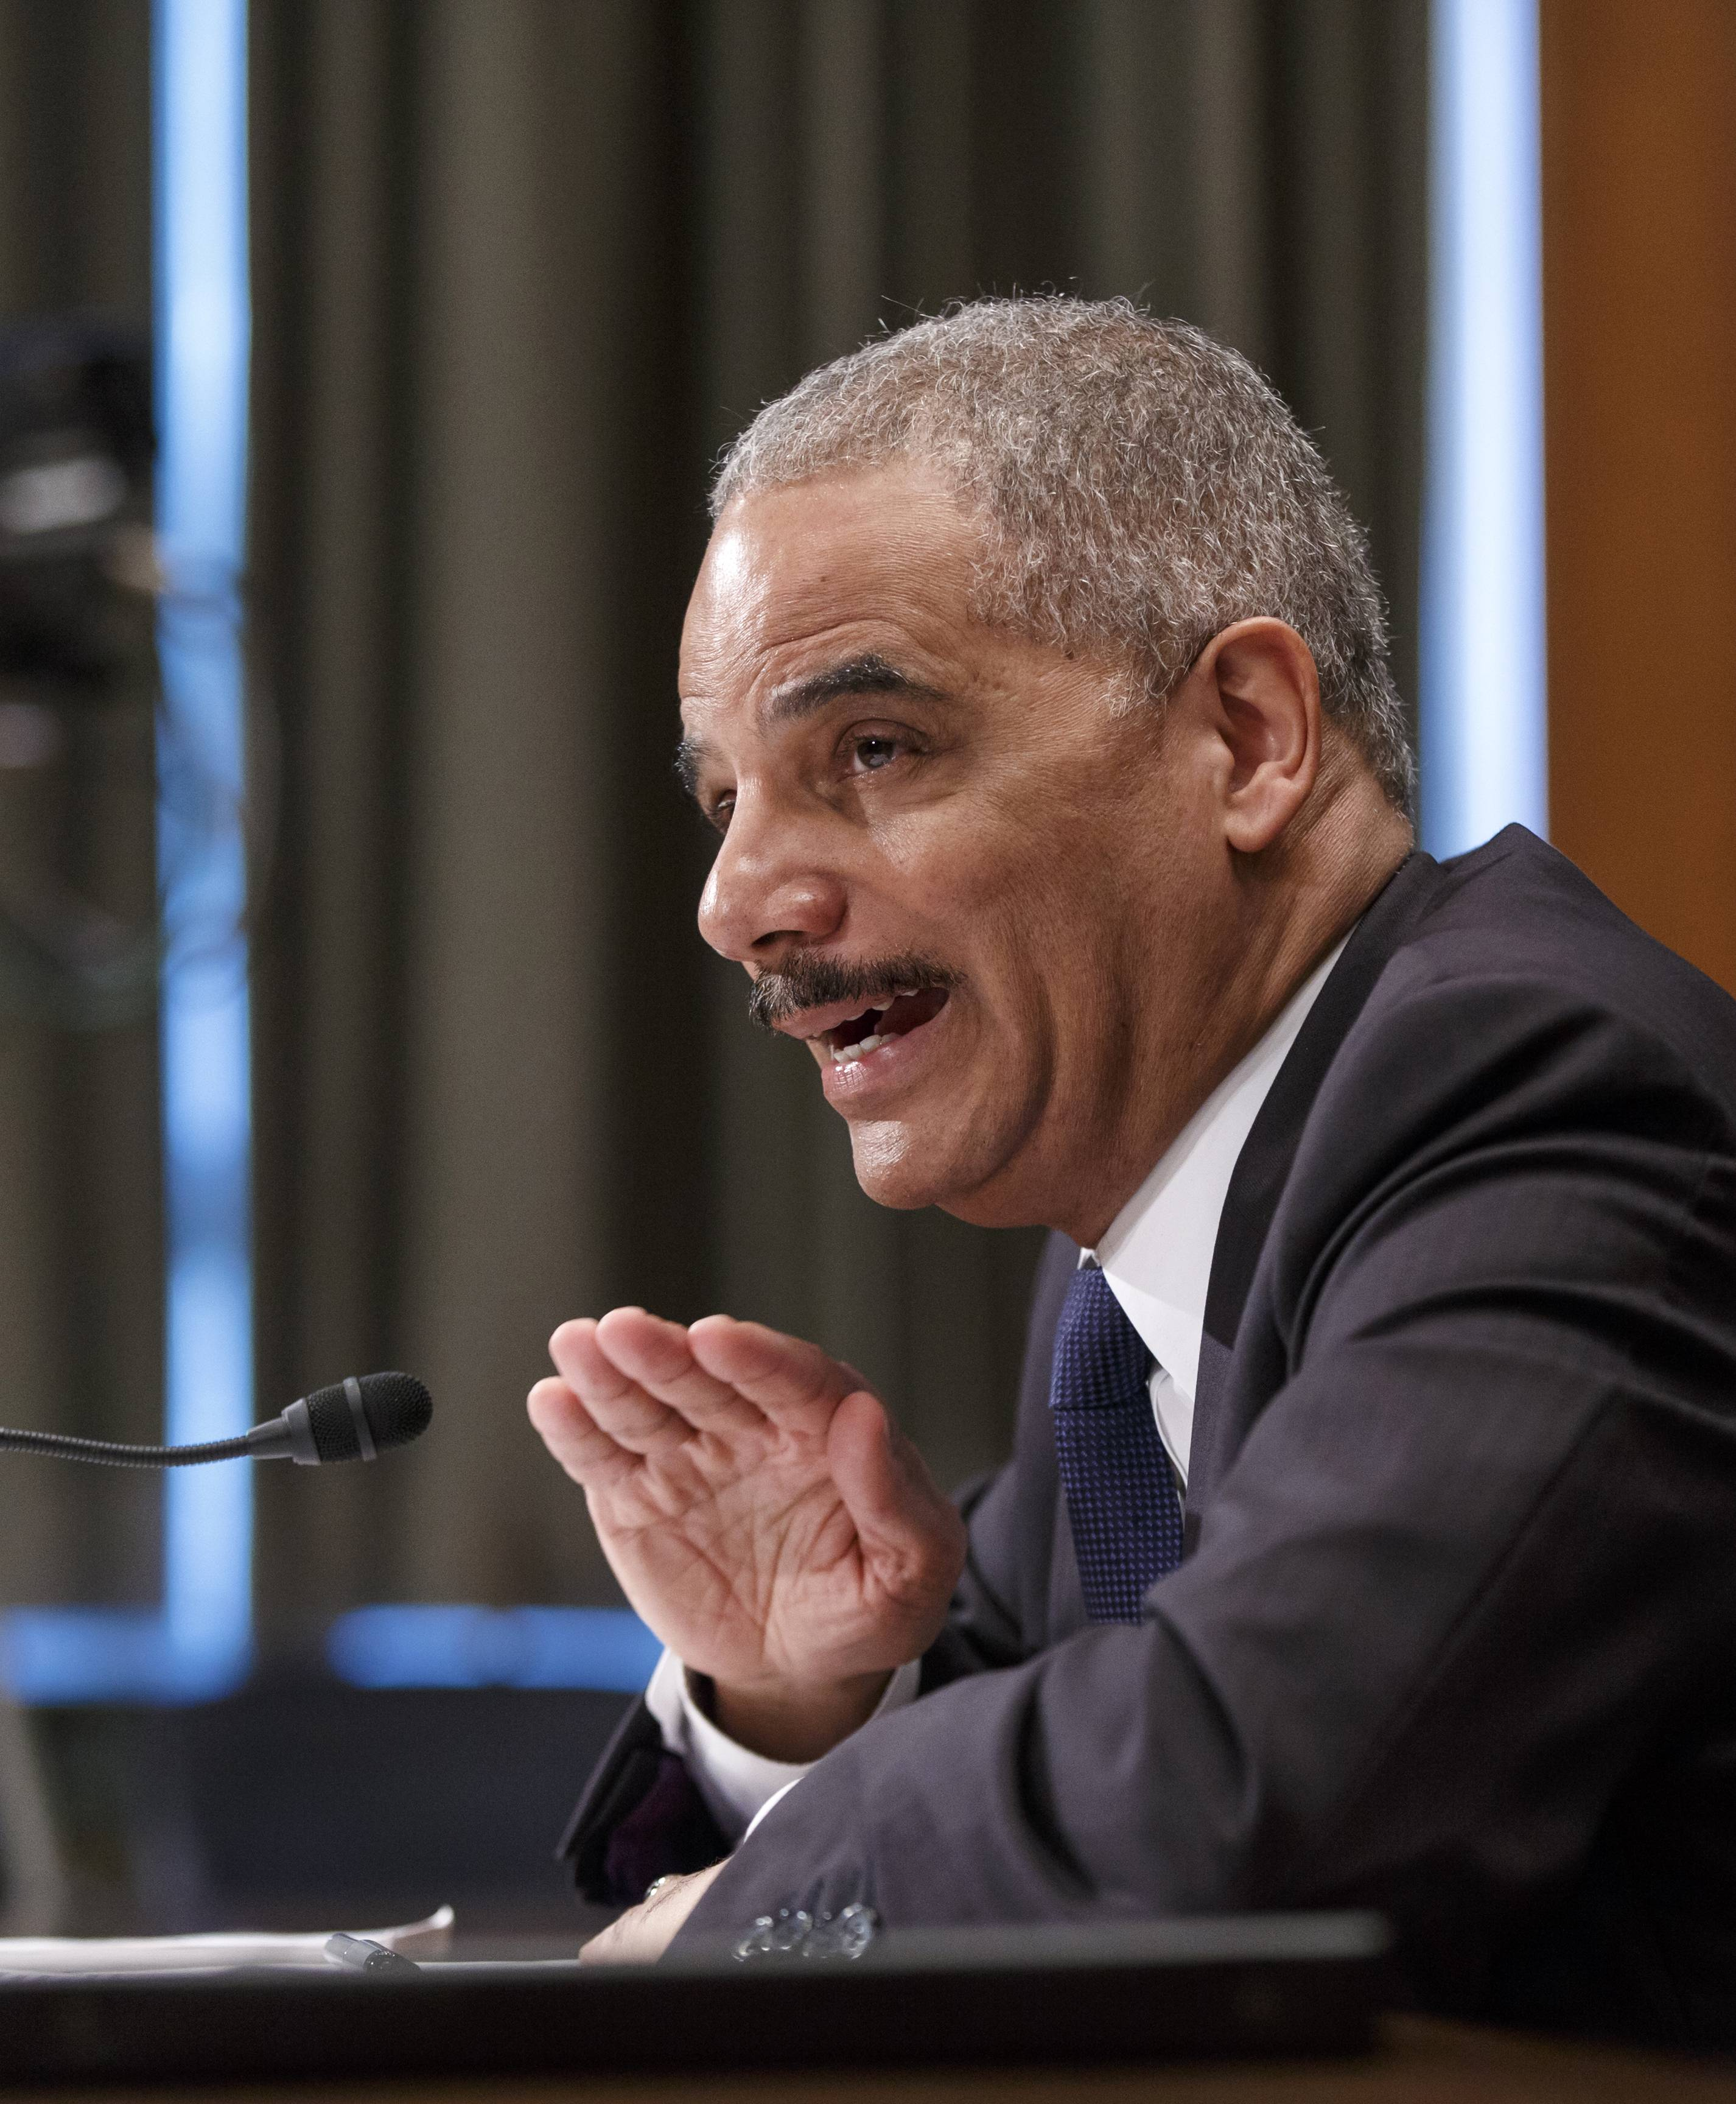 Attorney General Eric Holder testifies on Capitol Hill in Washington, Thursday, April 3, 2014, before a Senate Appropriations subcommittee on proposed budget estimates for fiscal year 2015 for the Justice Department. Holder said the government needs to deal differently with the heroin epidemic than it did with the crack cocaine crisis decades ago.